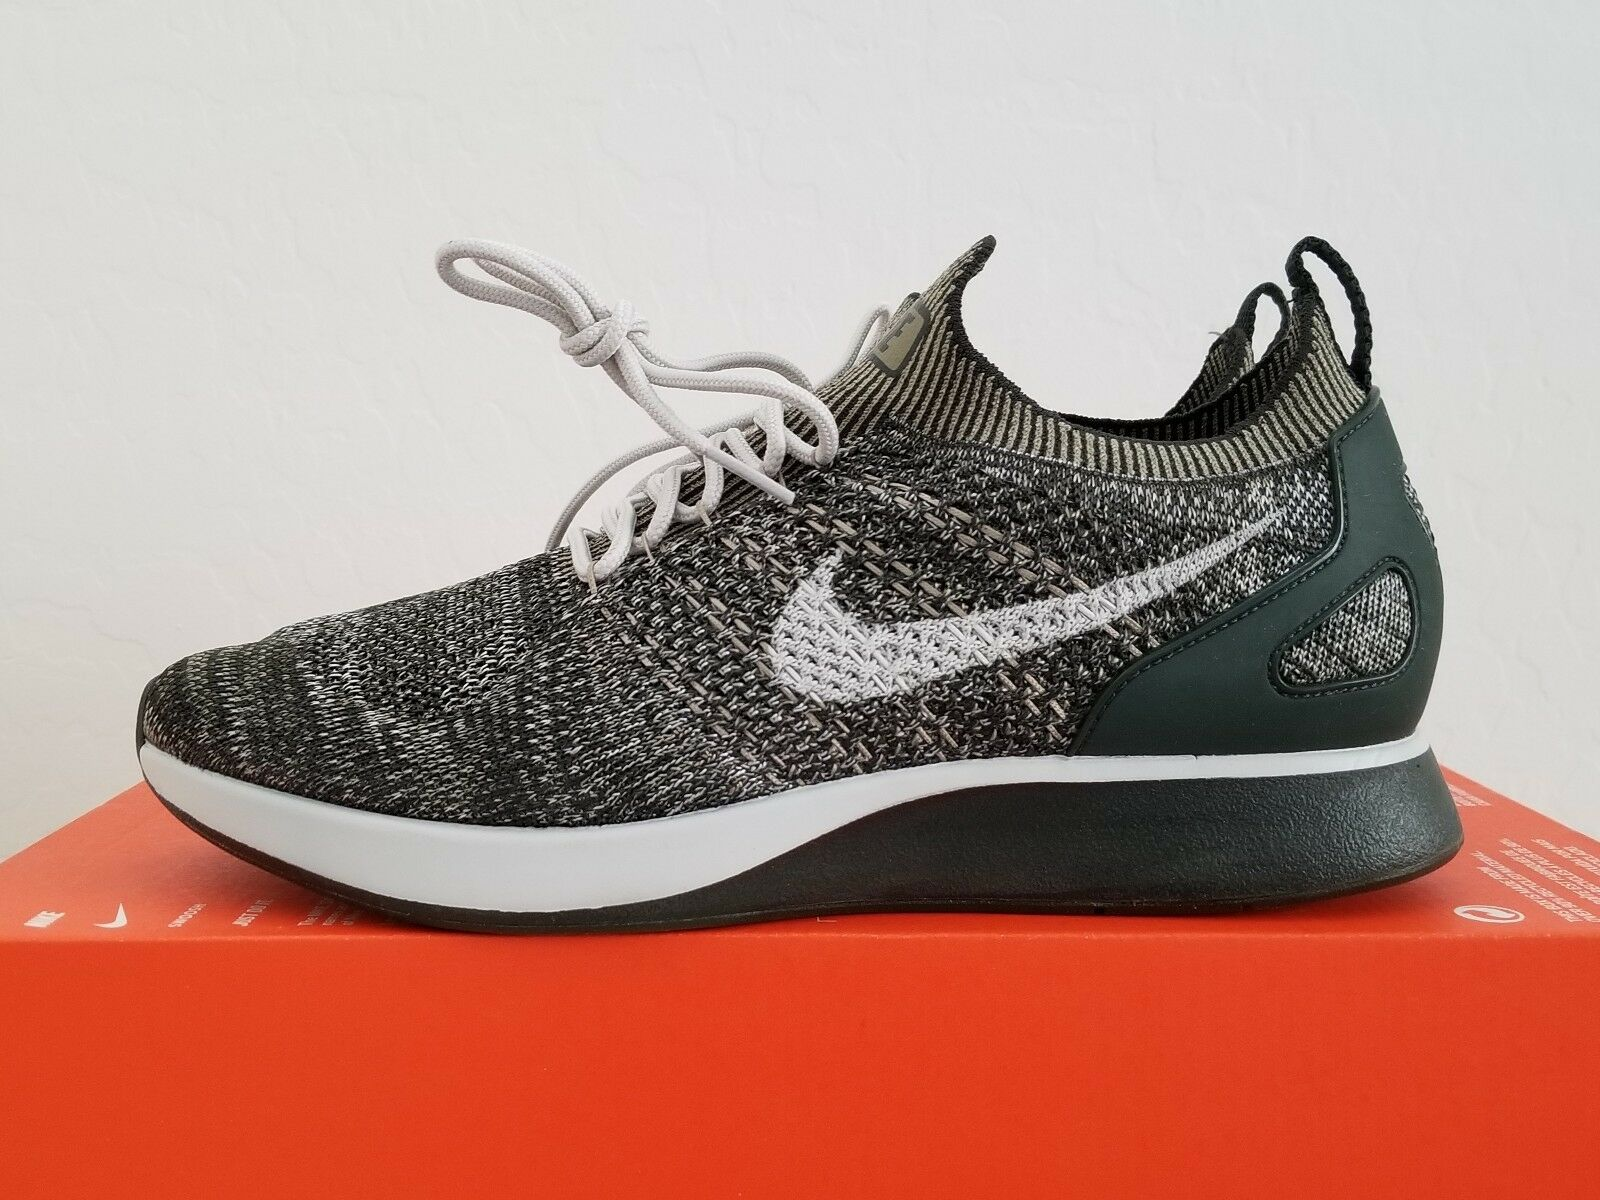 Nike Air Zoom Mariah Flyknit Racer Sequoia Neutral Olive Men's 918264 301 Size 9